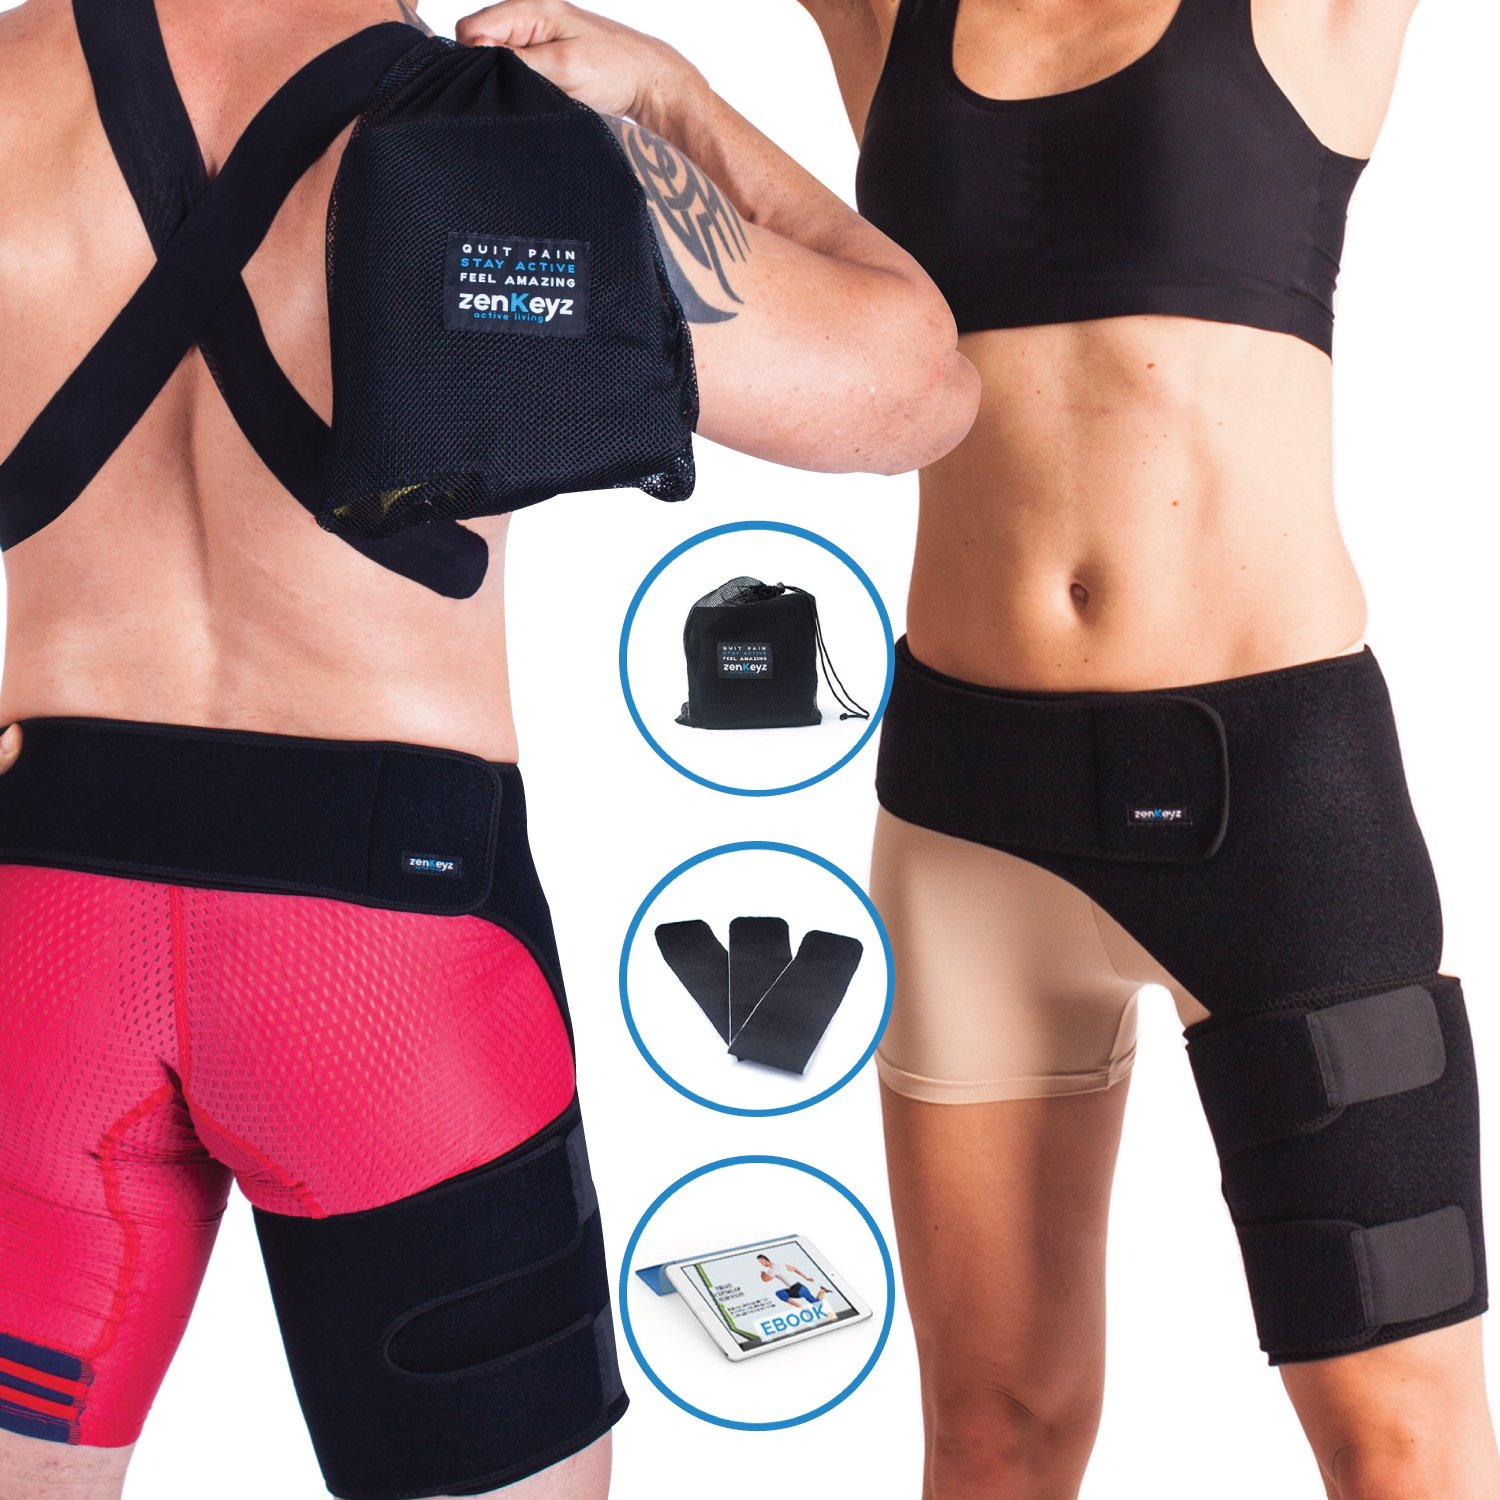 Groin support and Hip brace for men and women - Compression Wrap for Thigh Quad Hamstring Joints Sciatica Nerve Pain Relief Strap by Zenkeyz